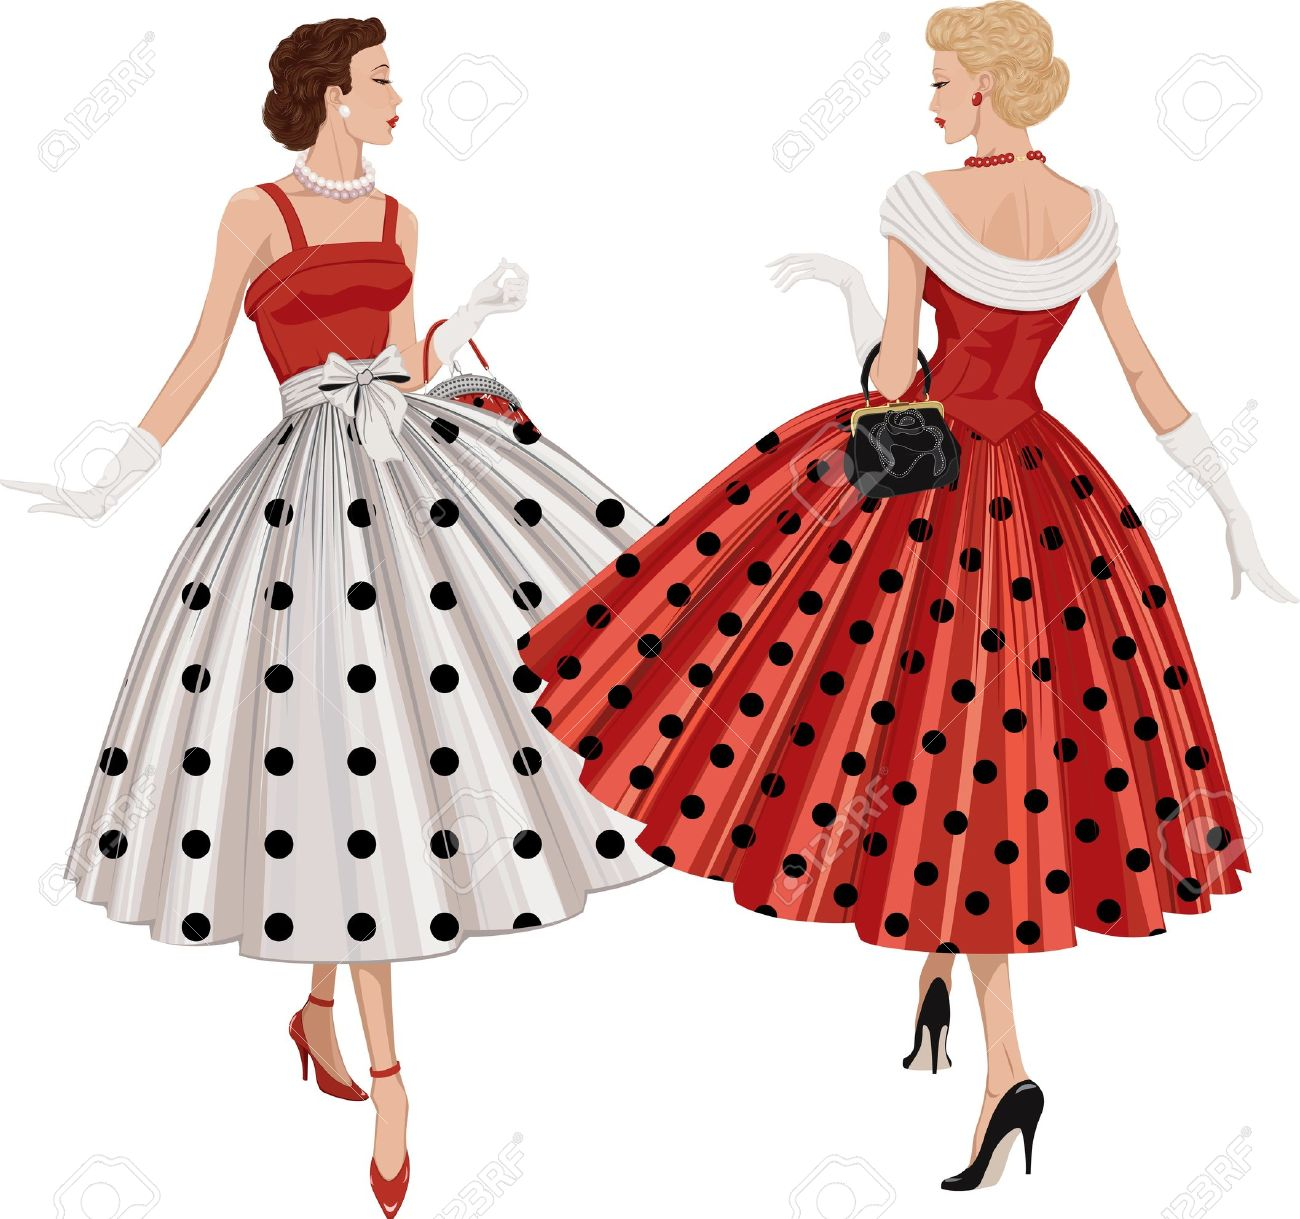 Two elegant women the brunette and the blonde dressed in polka dots garments inspect each other passing by - 12409989